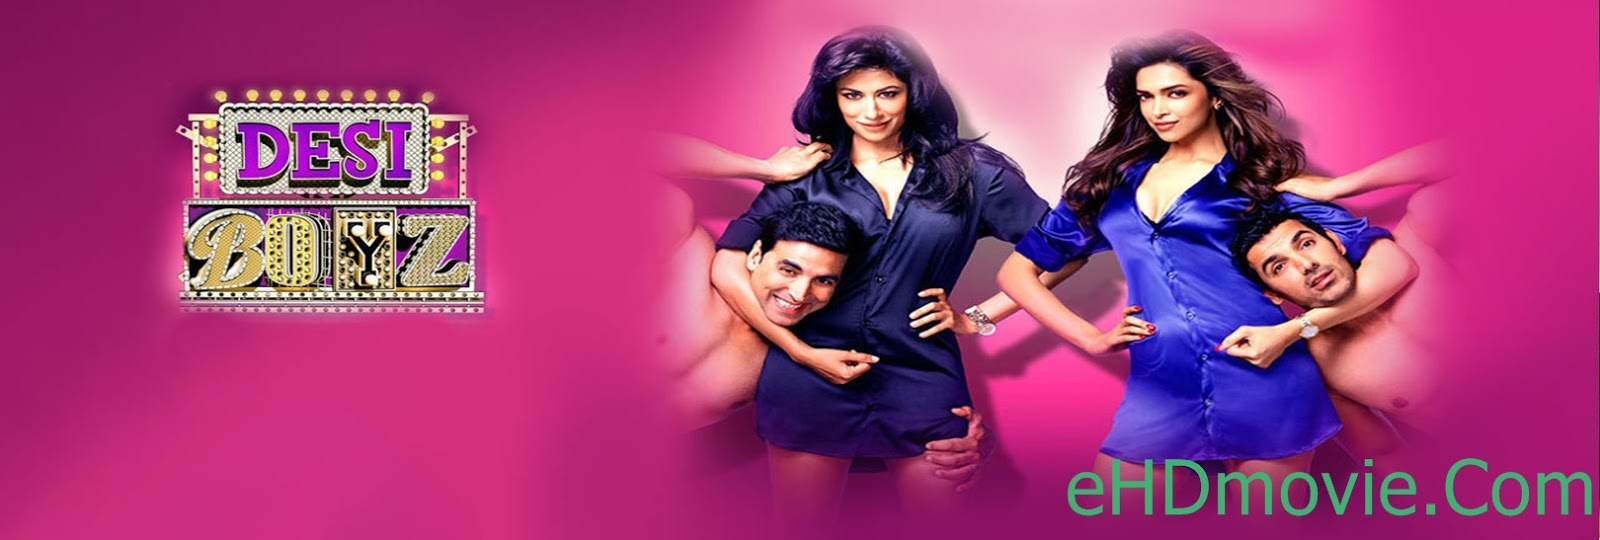 Desi Boyz 2011 Full Movie Hindi 720p - HEVC - 480p ORG BRRip 350MB - 550MB - 1GB ESubs Free Download